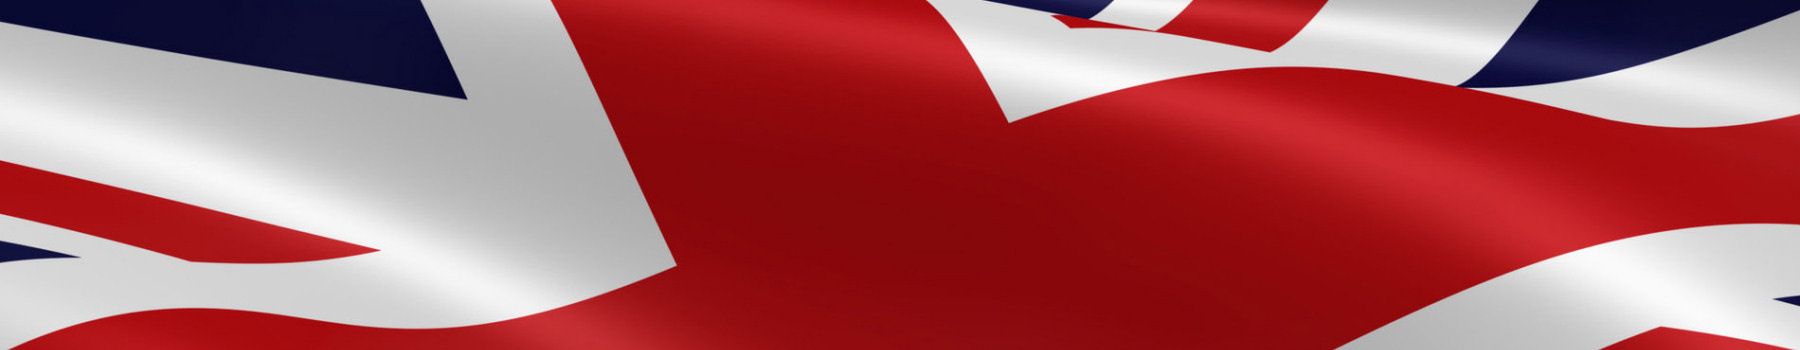 Union flag - motif of south.expost.uk